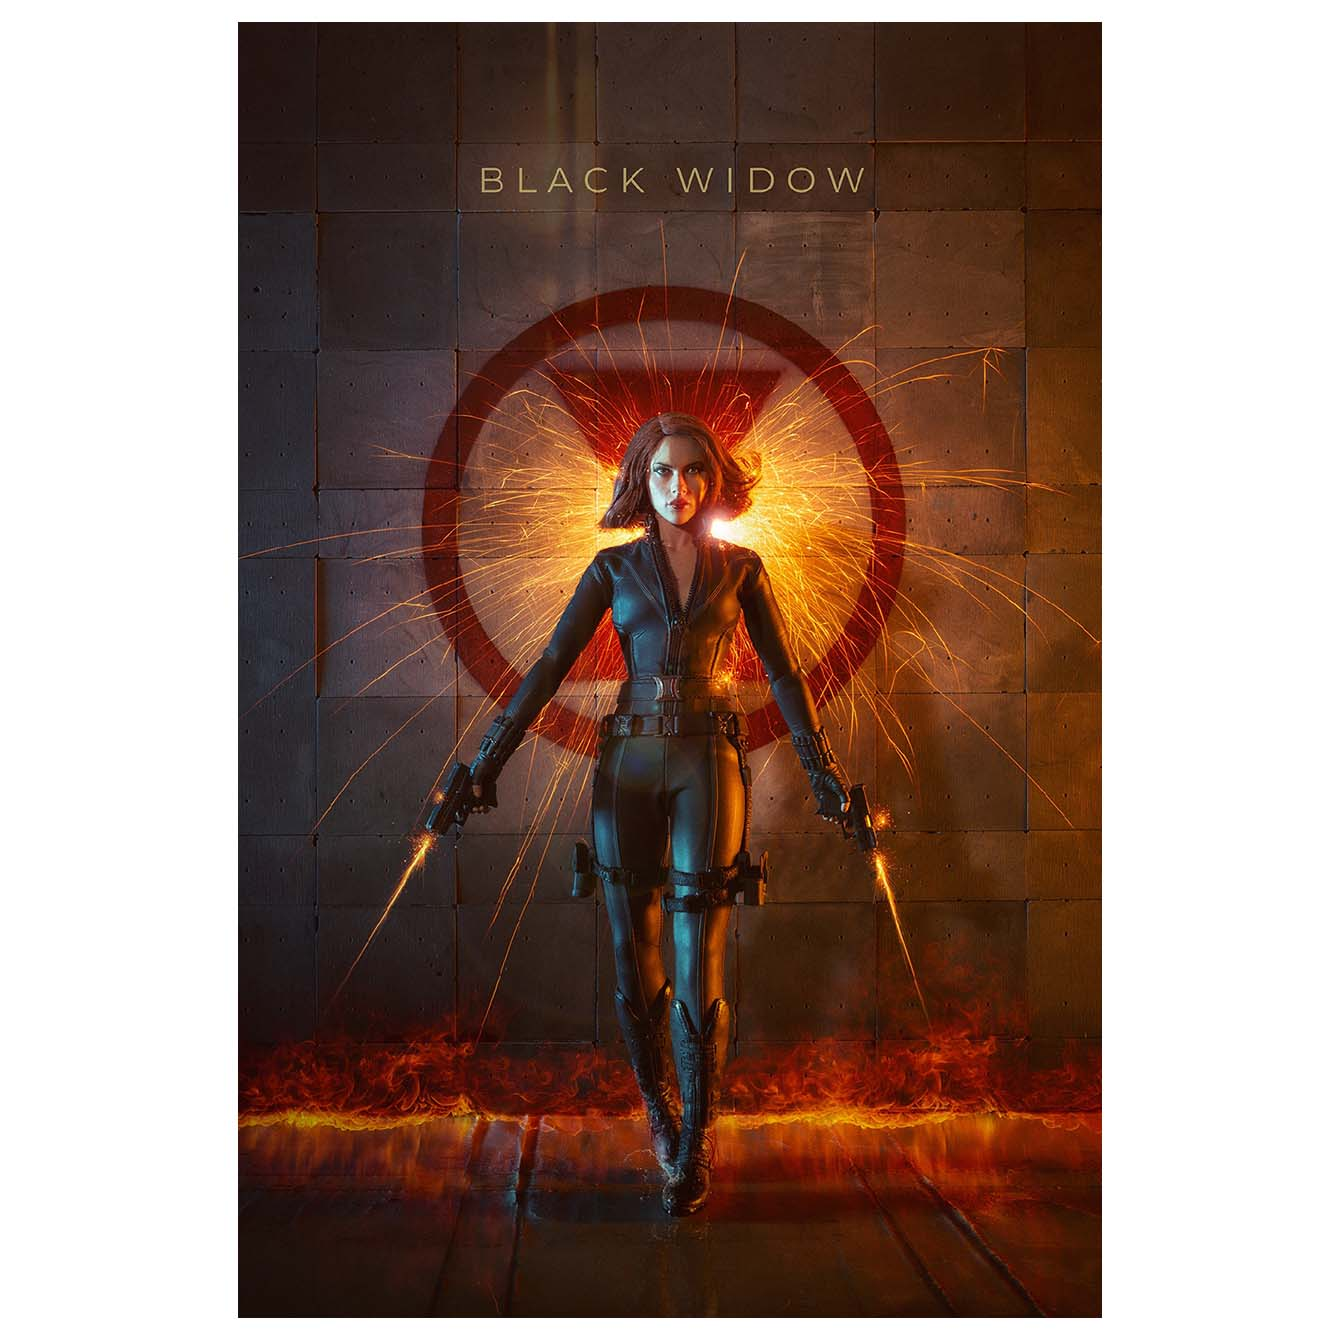 Black Widow Art work